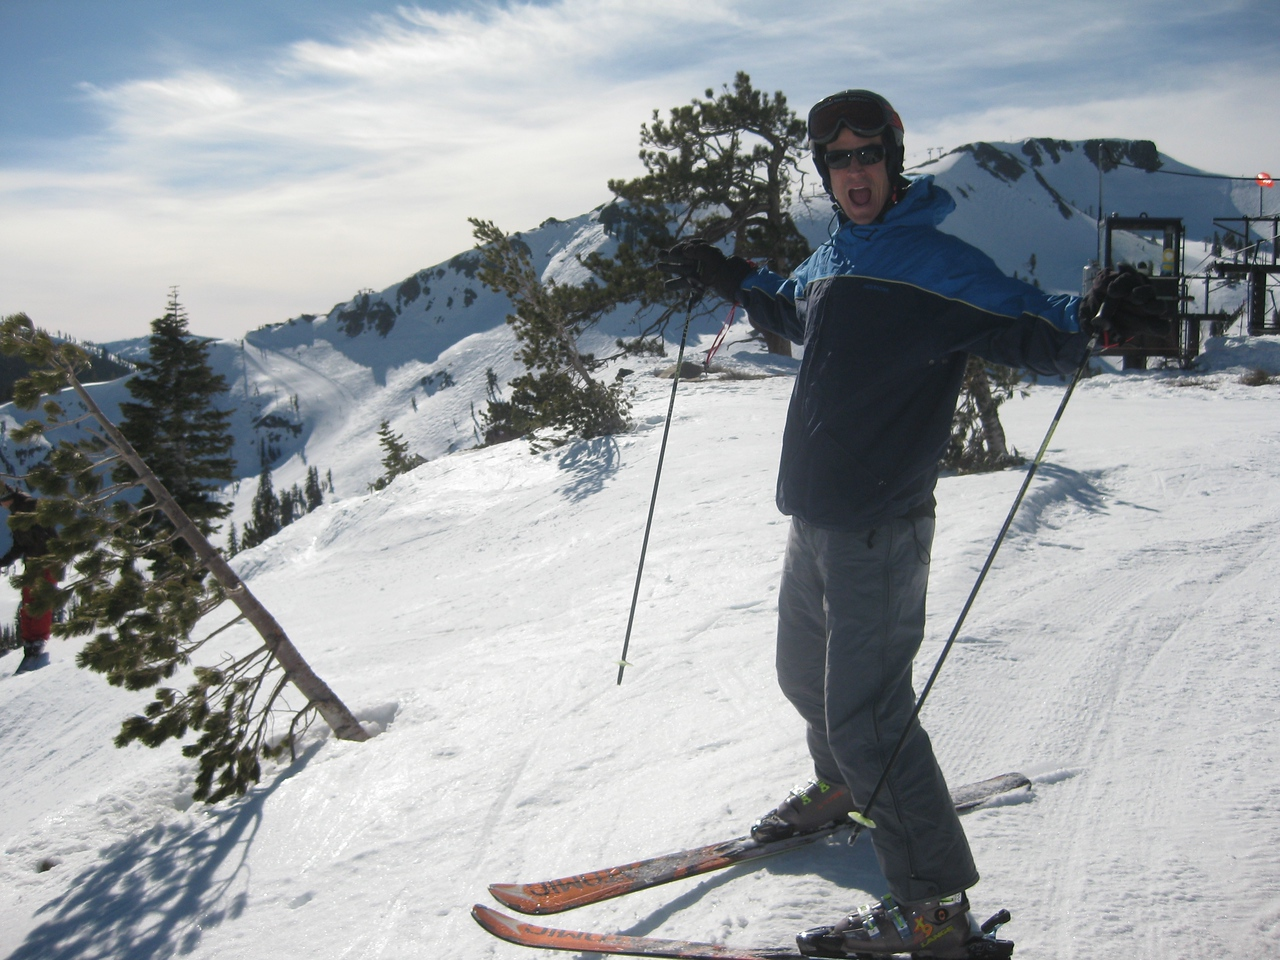 Kurty at Squaw Valley